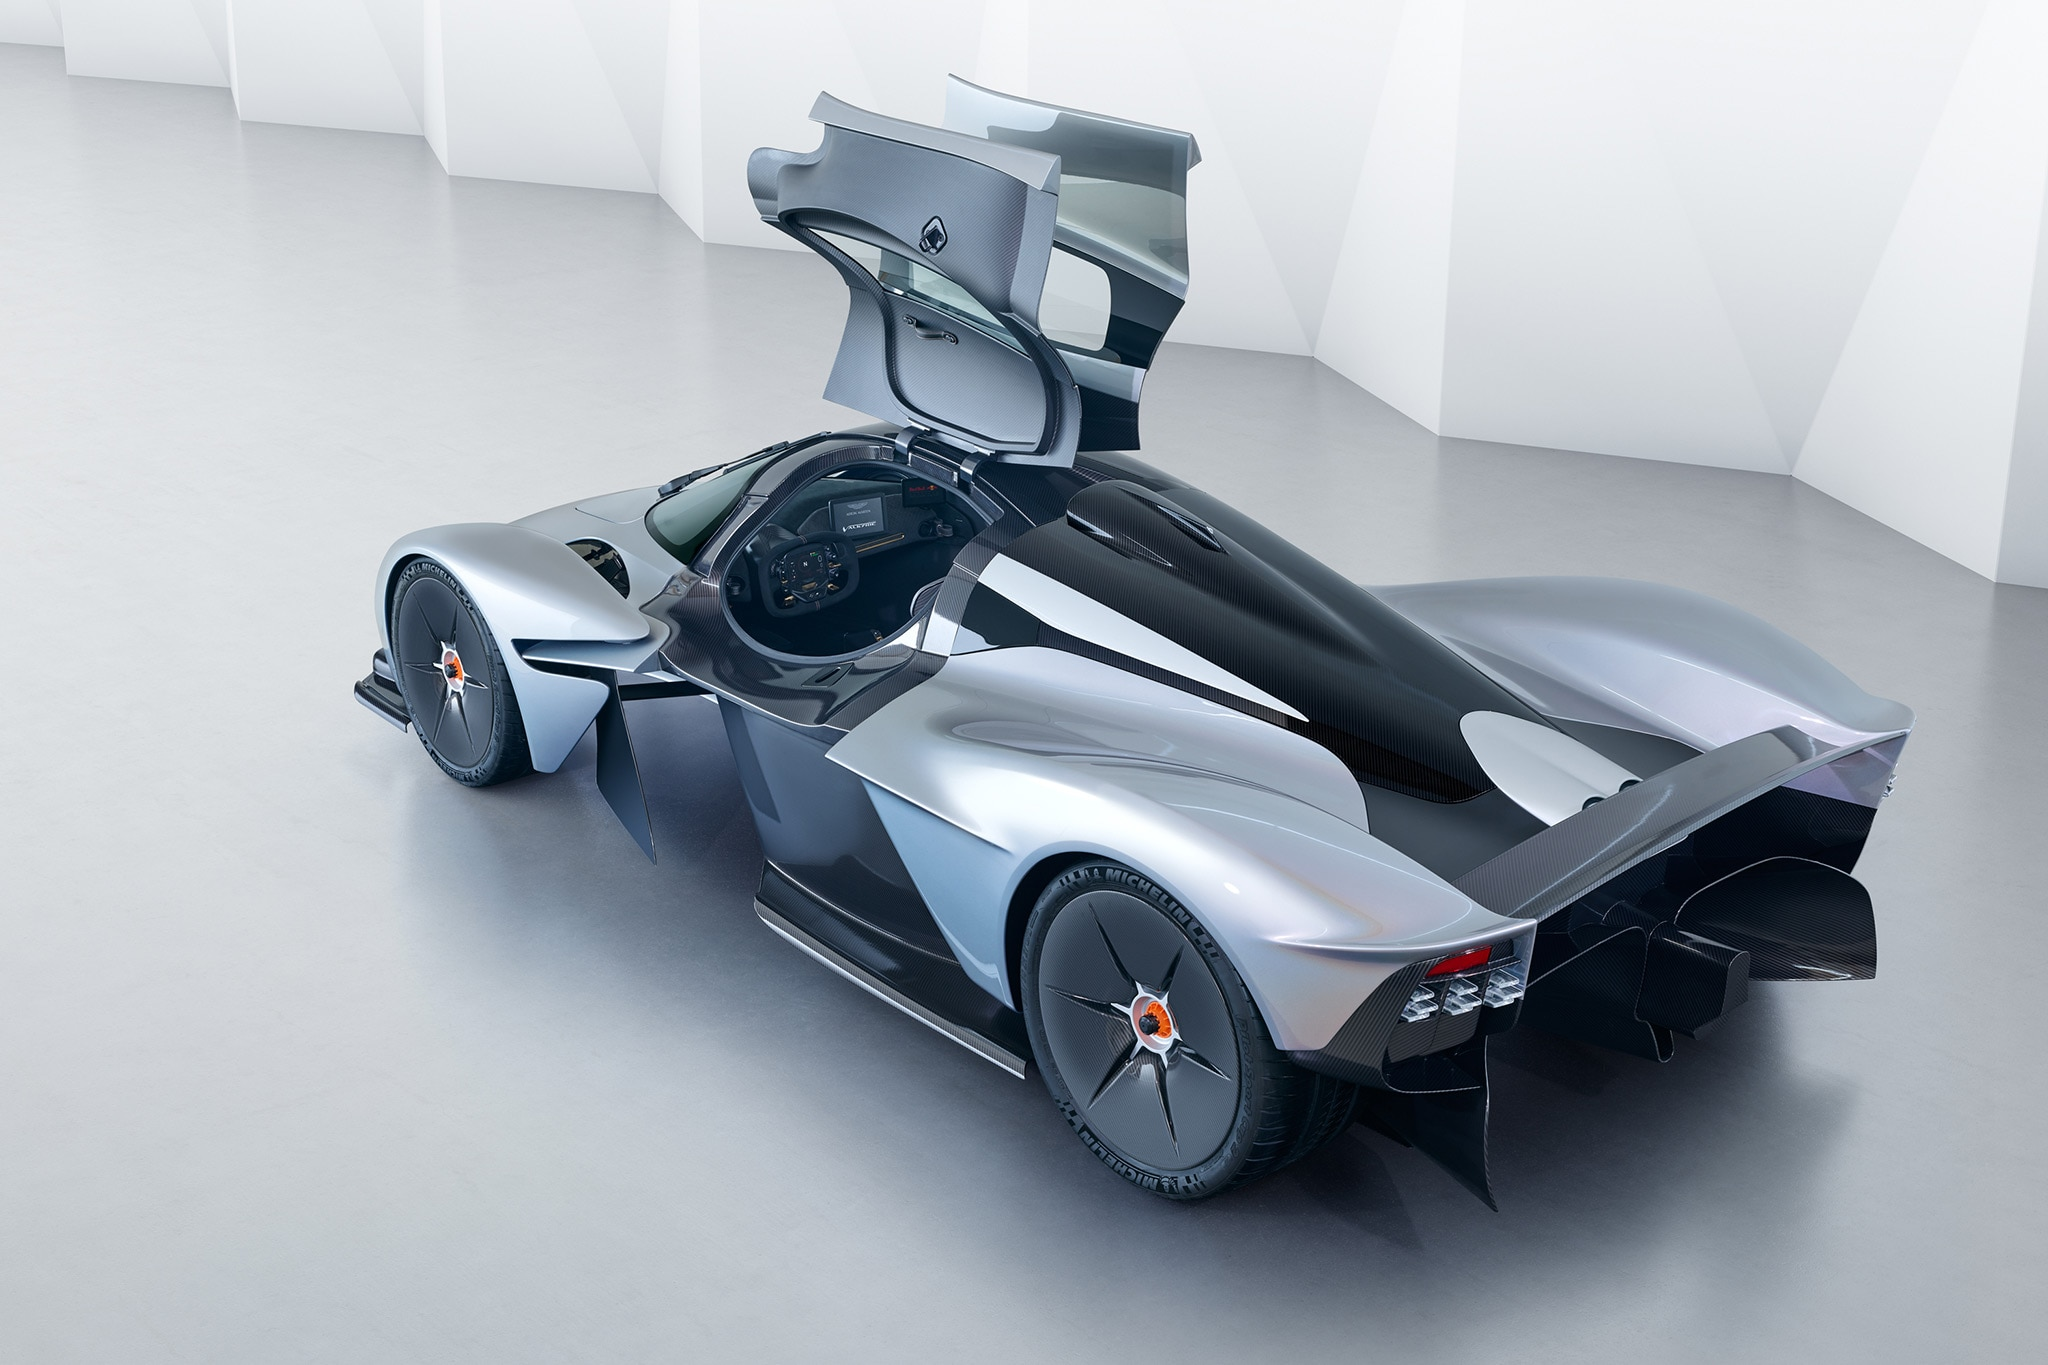 Aston Martin drops more details on upcoming Valkyrie hypercar